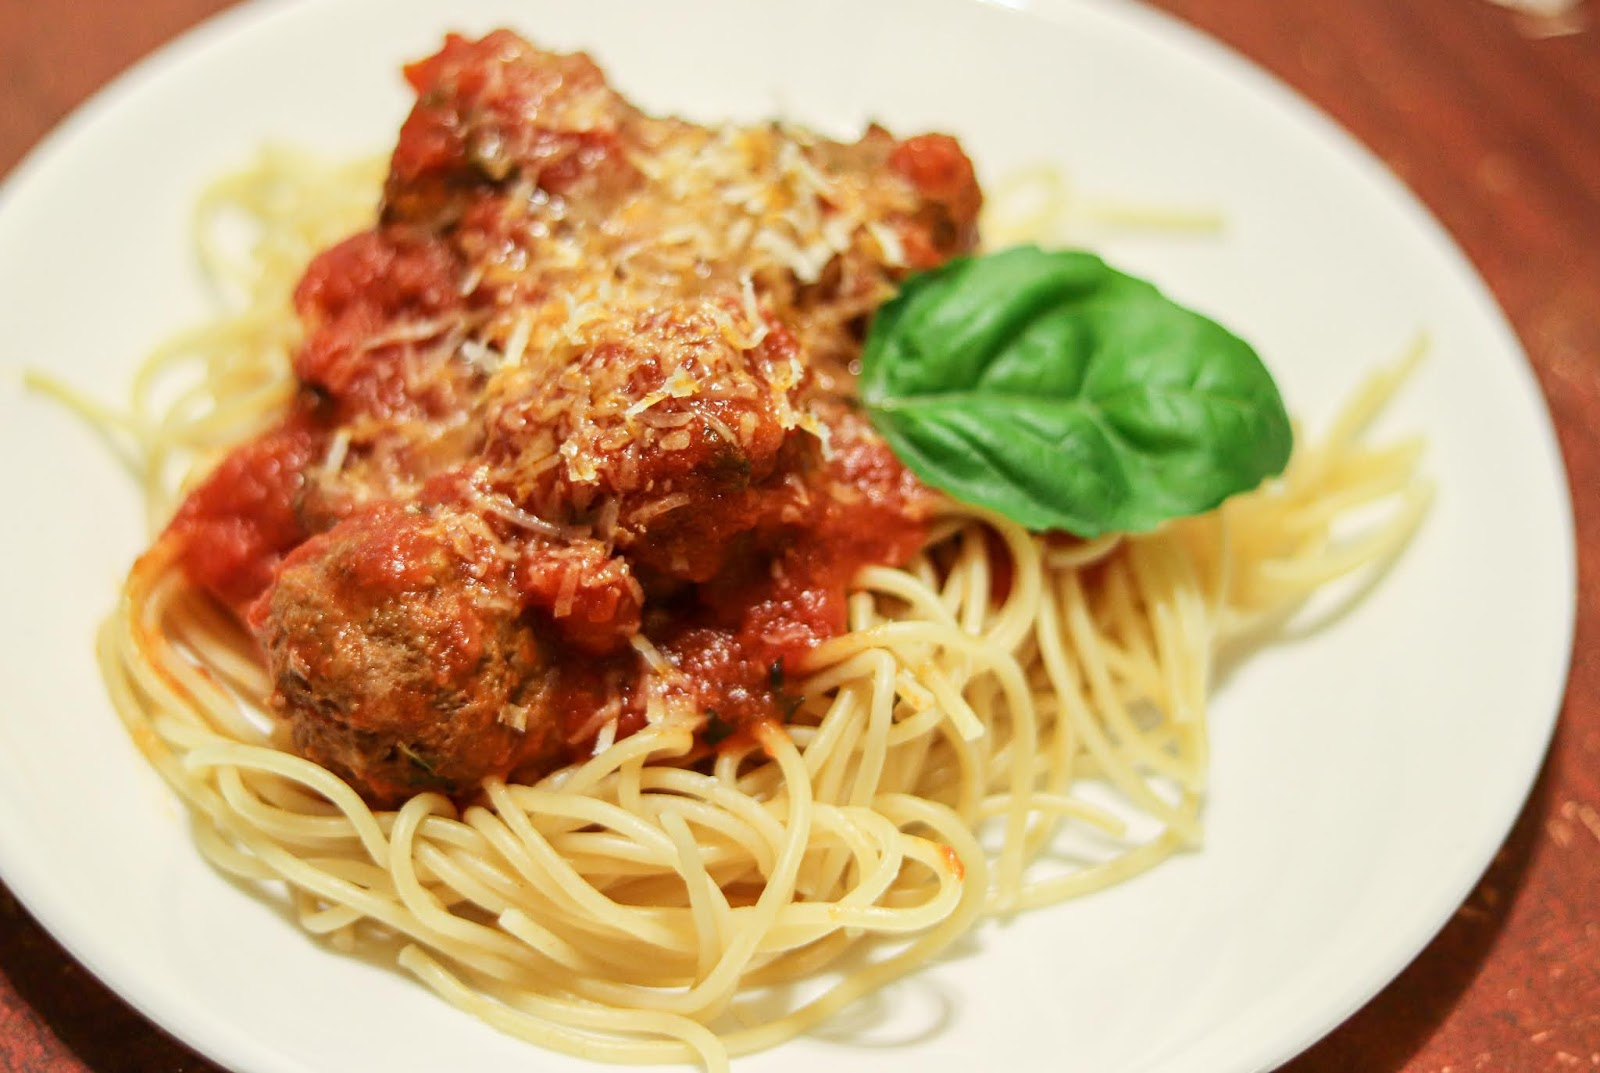 A delicious plate of spaghetti and meatballs